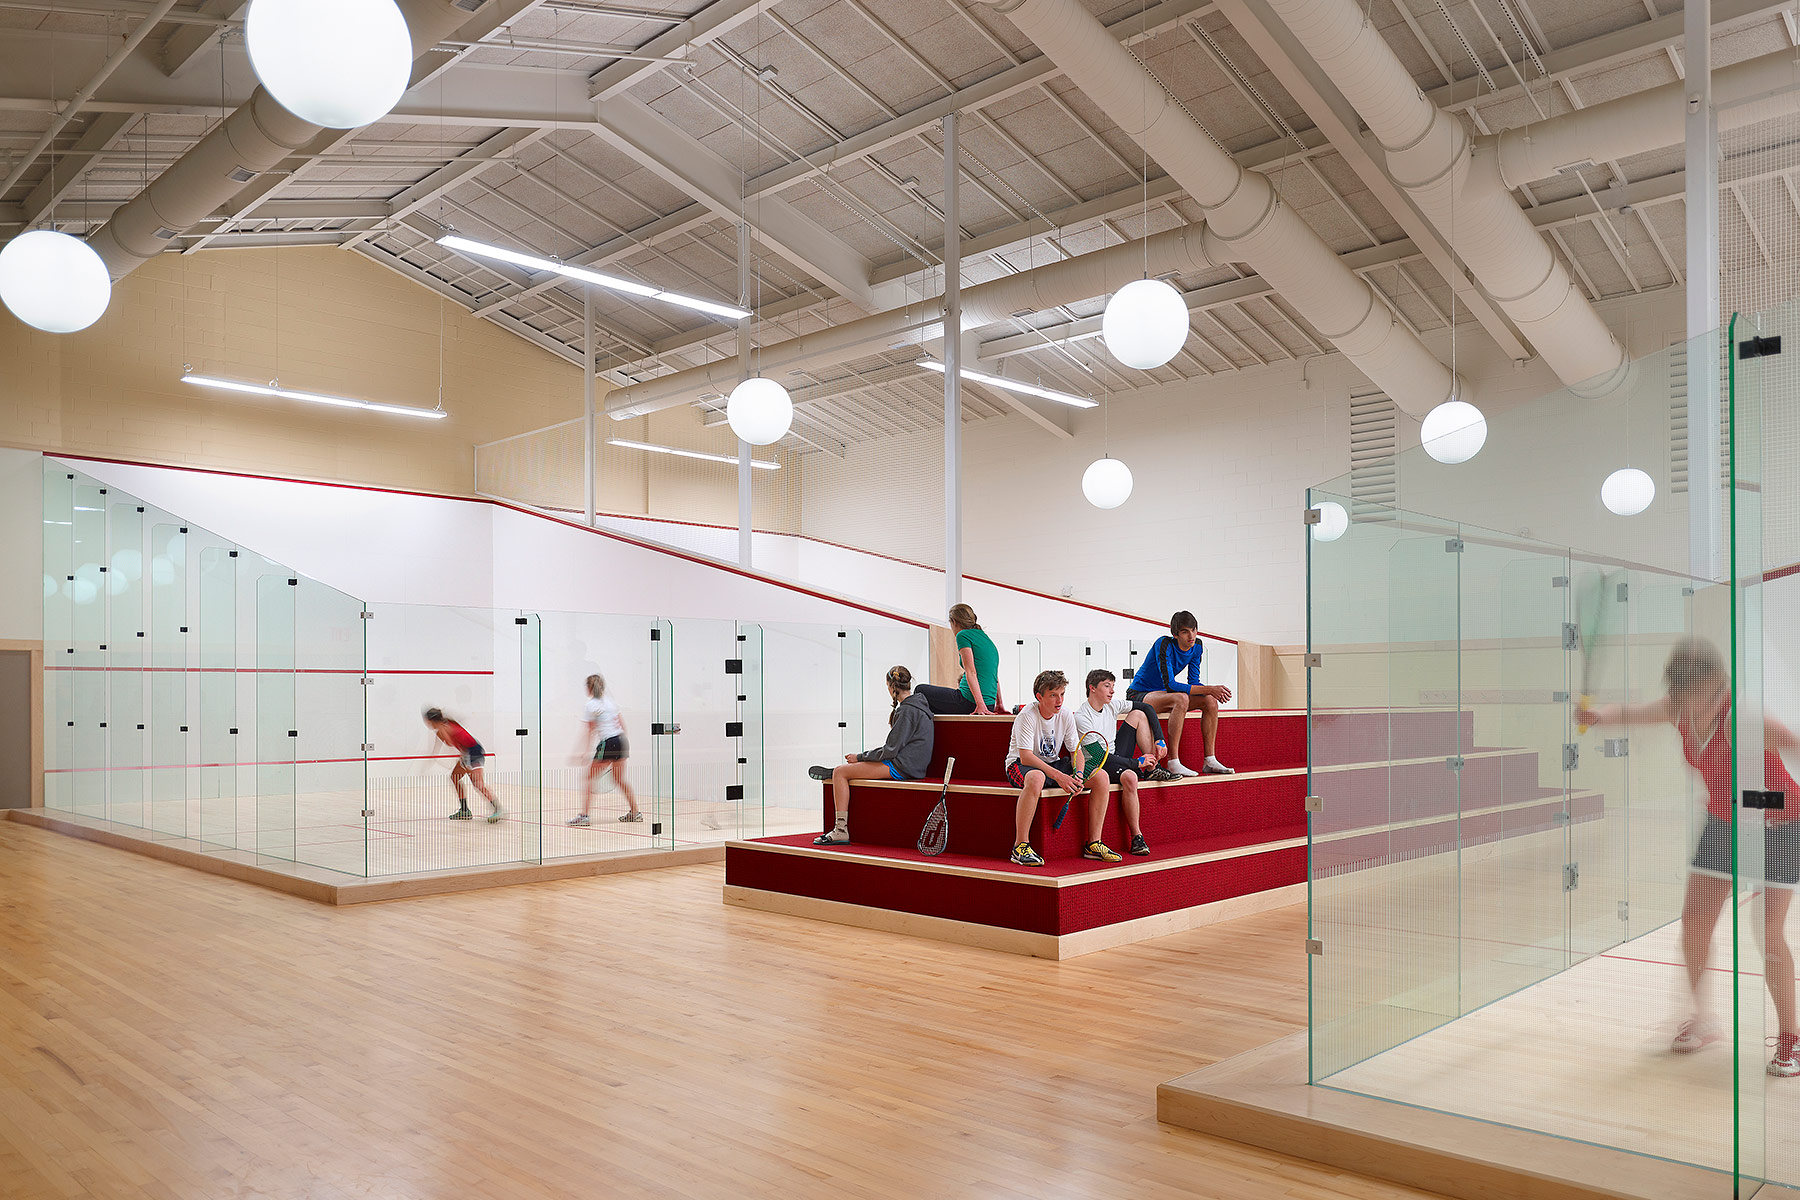 St. Andrews School Voith & Mactavish Architects Middletown, DE